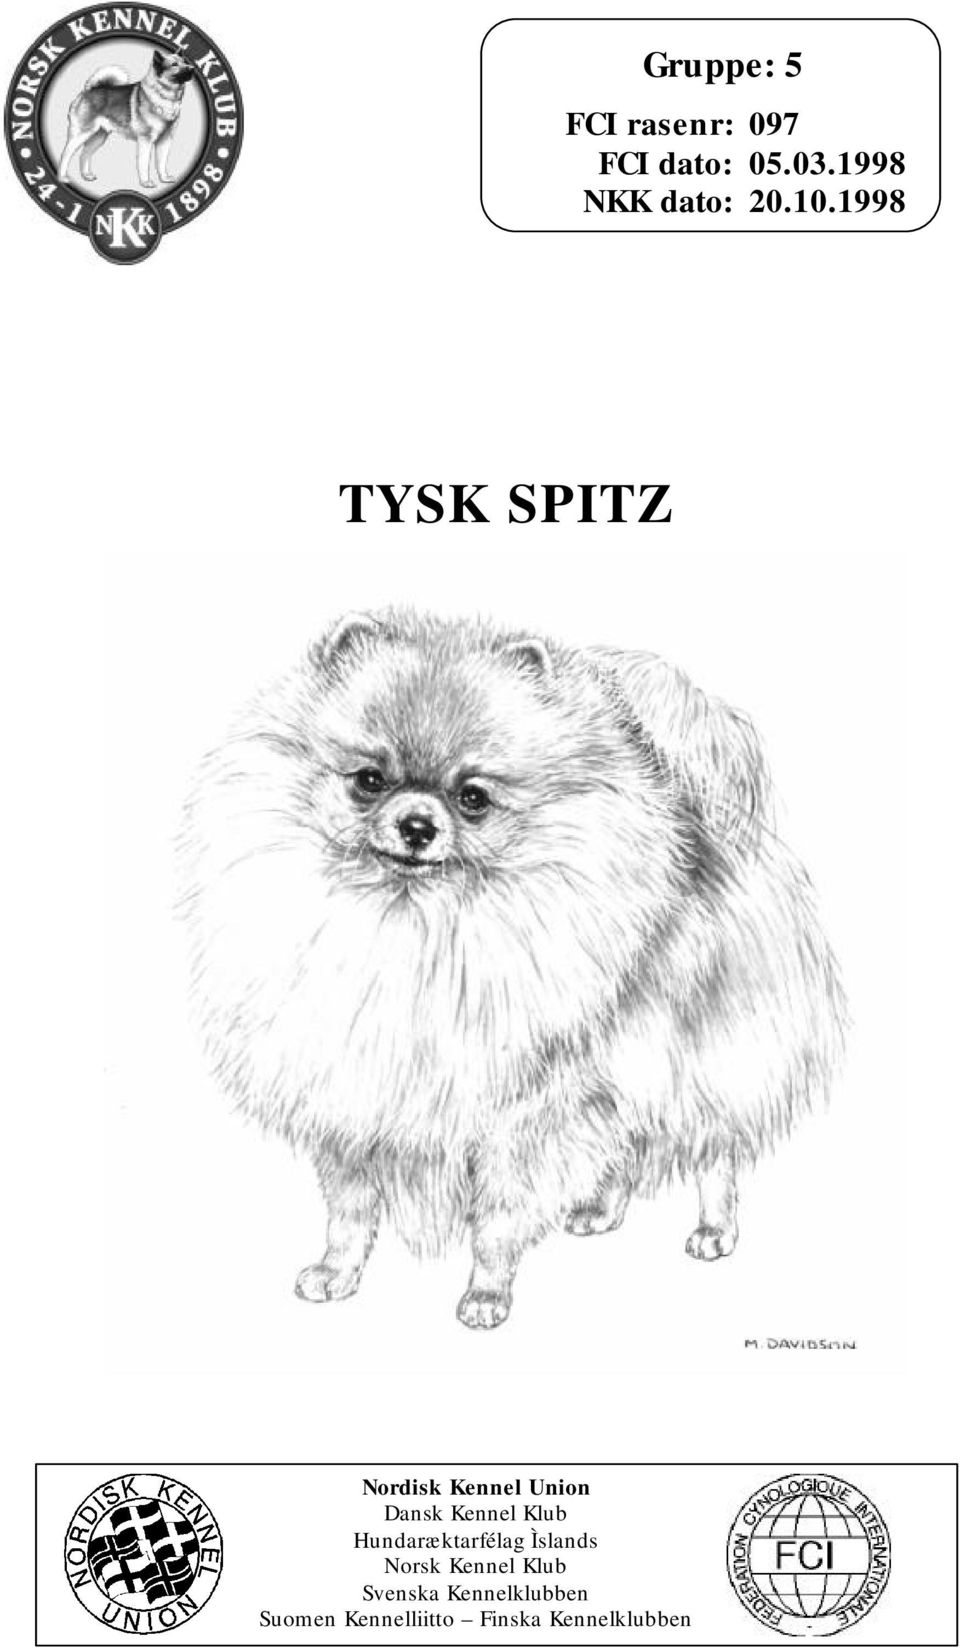 1998 TYSK SPITZ Nordisk Kennel Union Dansk Kennel Klub